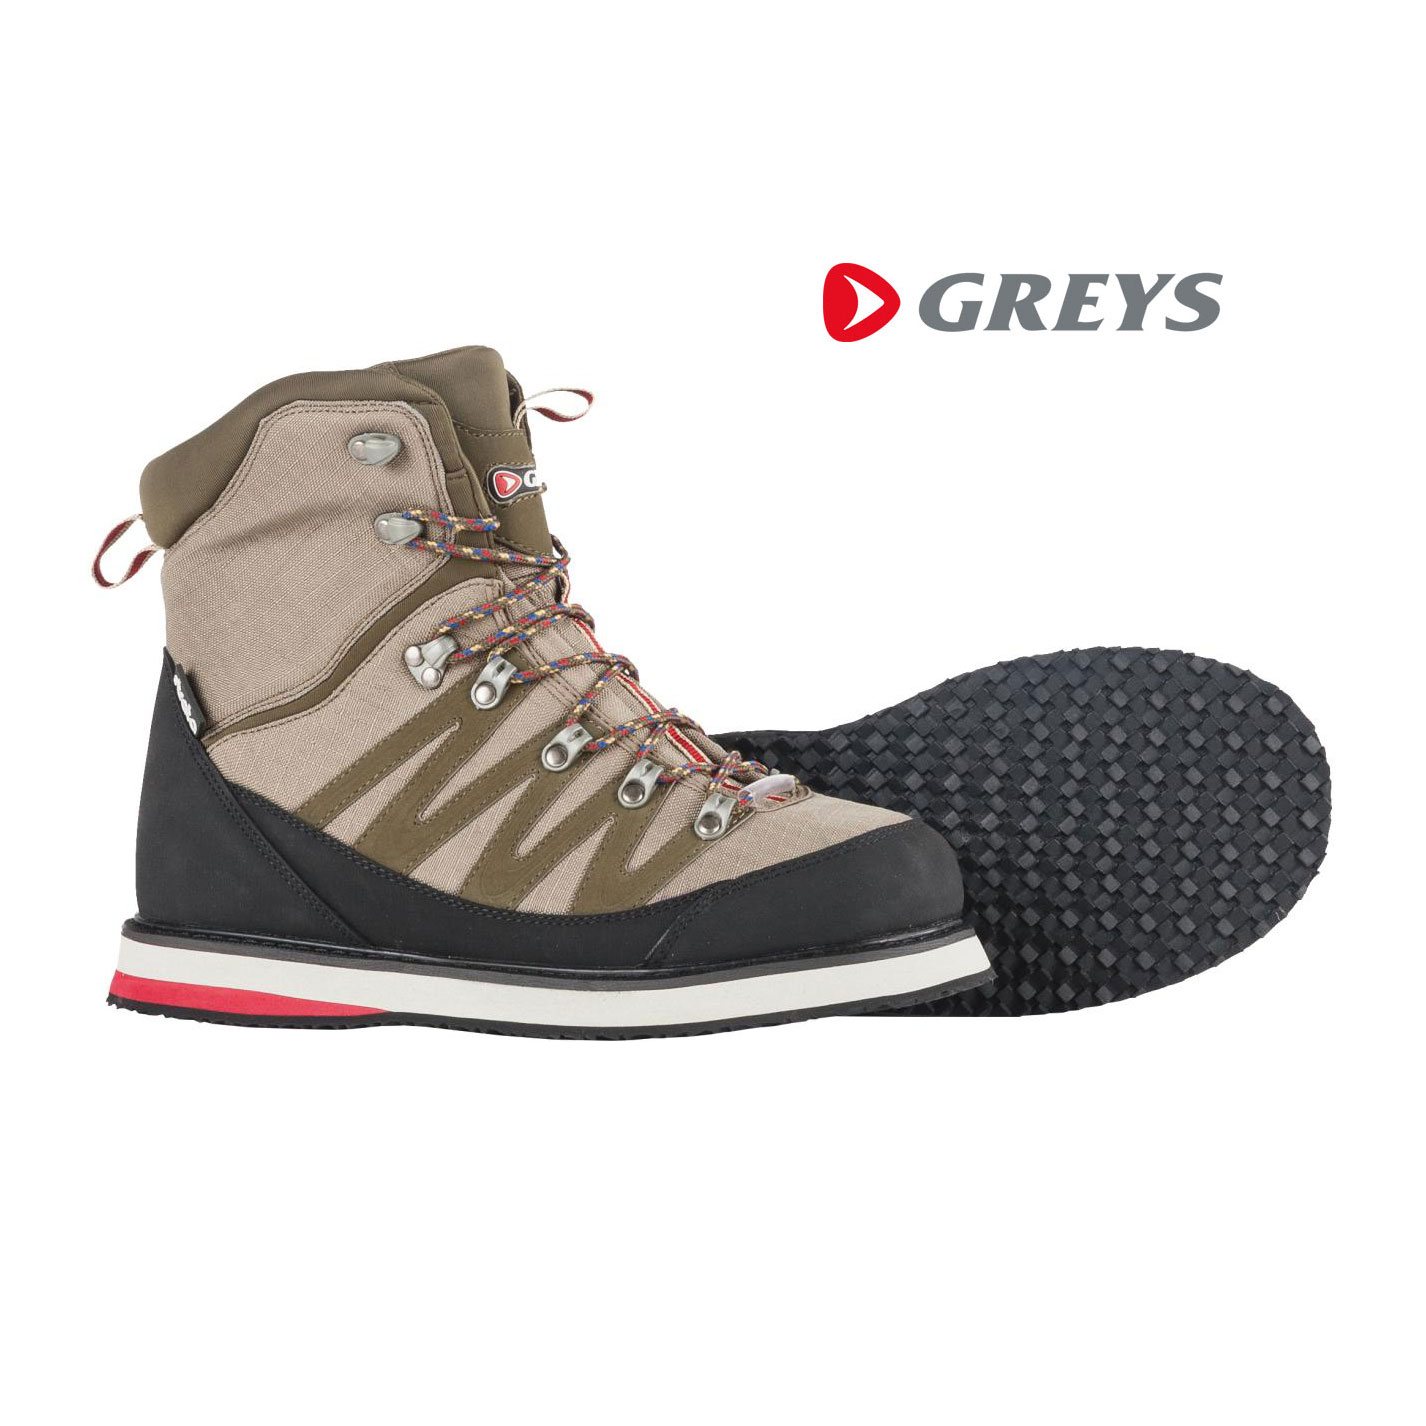 Greys Strata CT wading boot